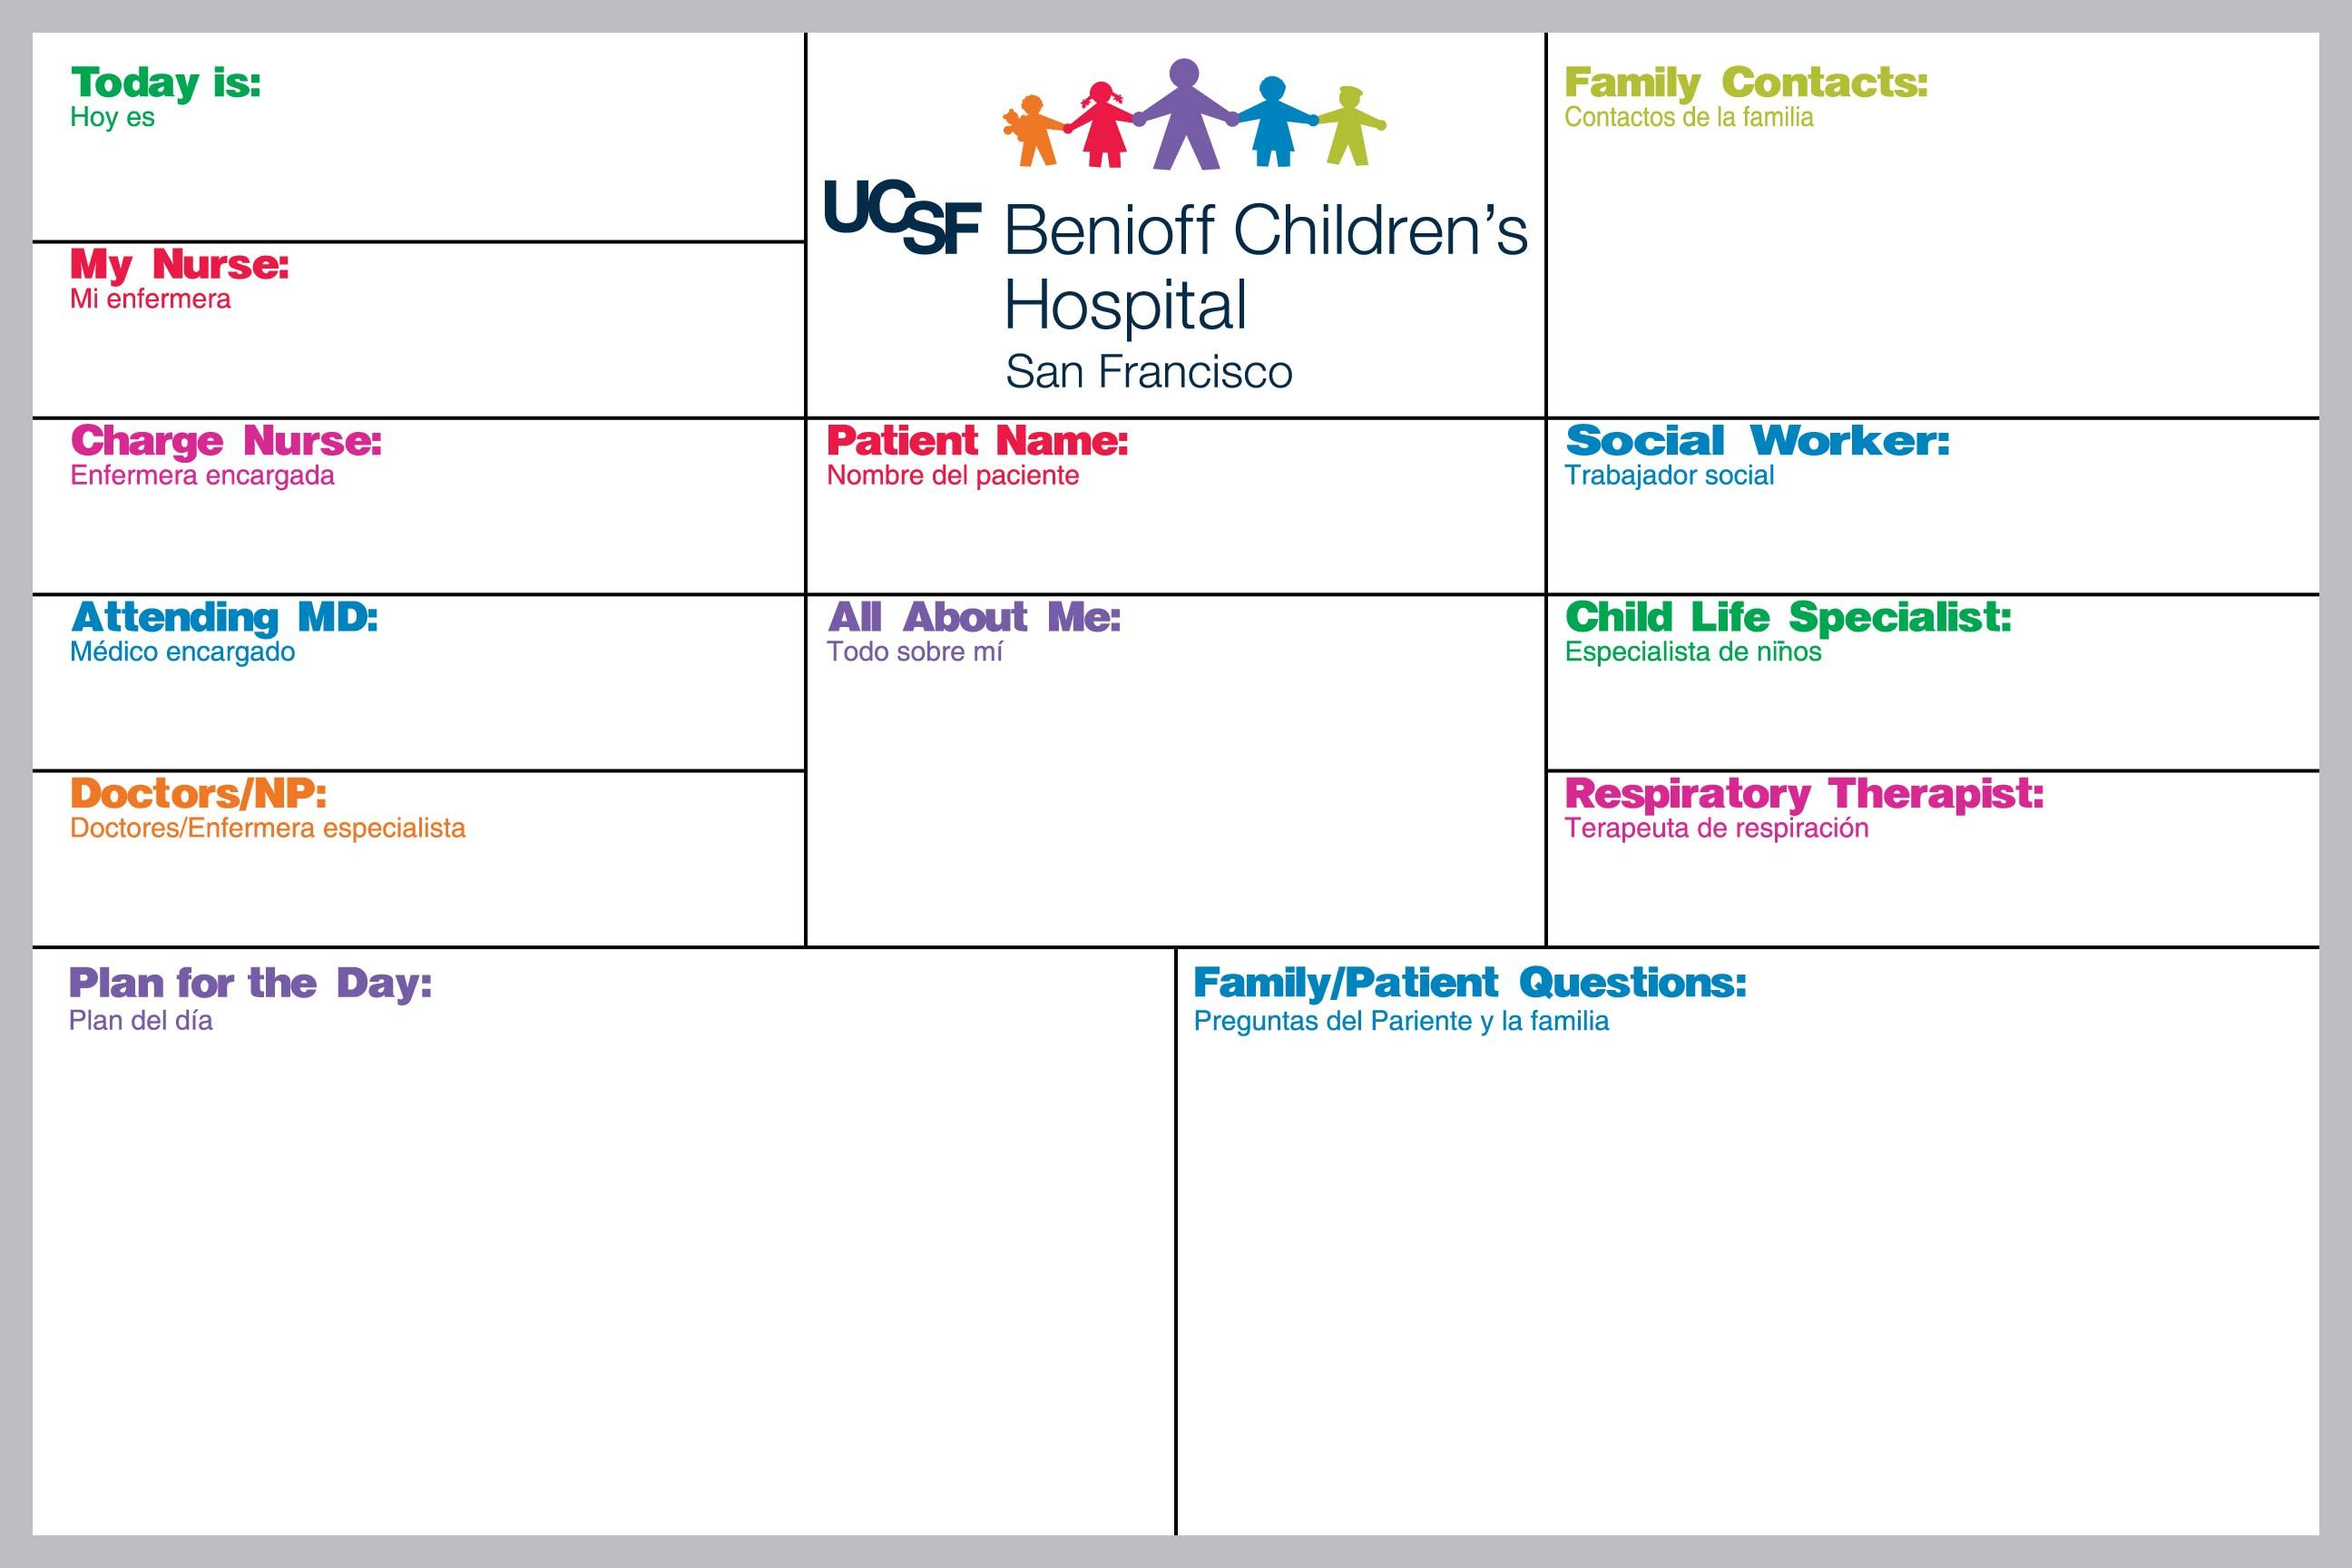 Bilingual Medical Patient Board for UCSF Benioff Children's Hospital